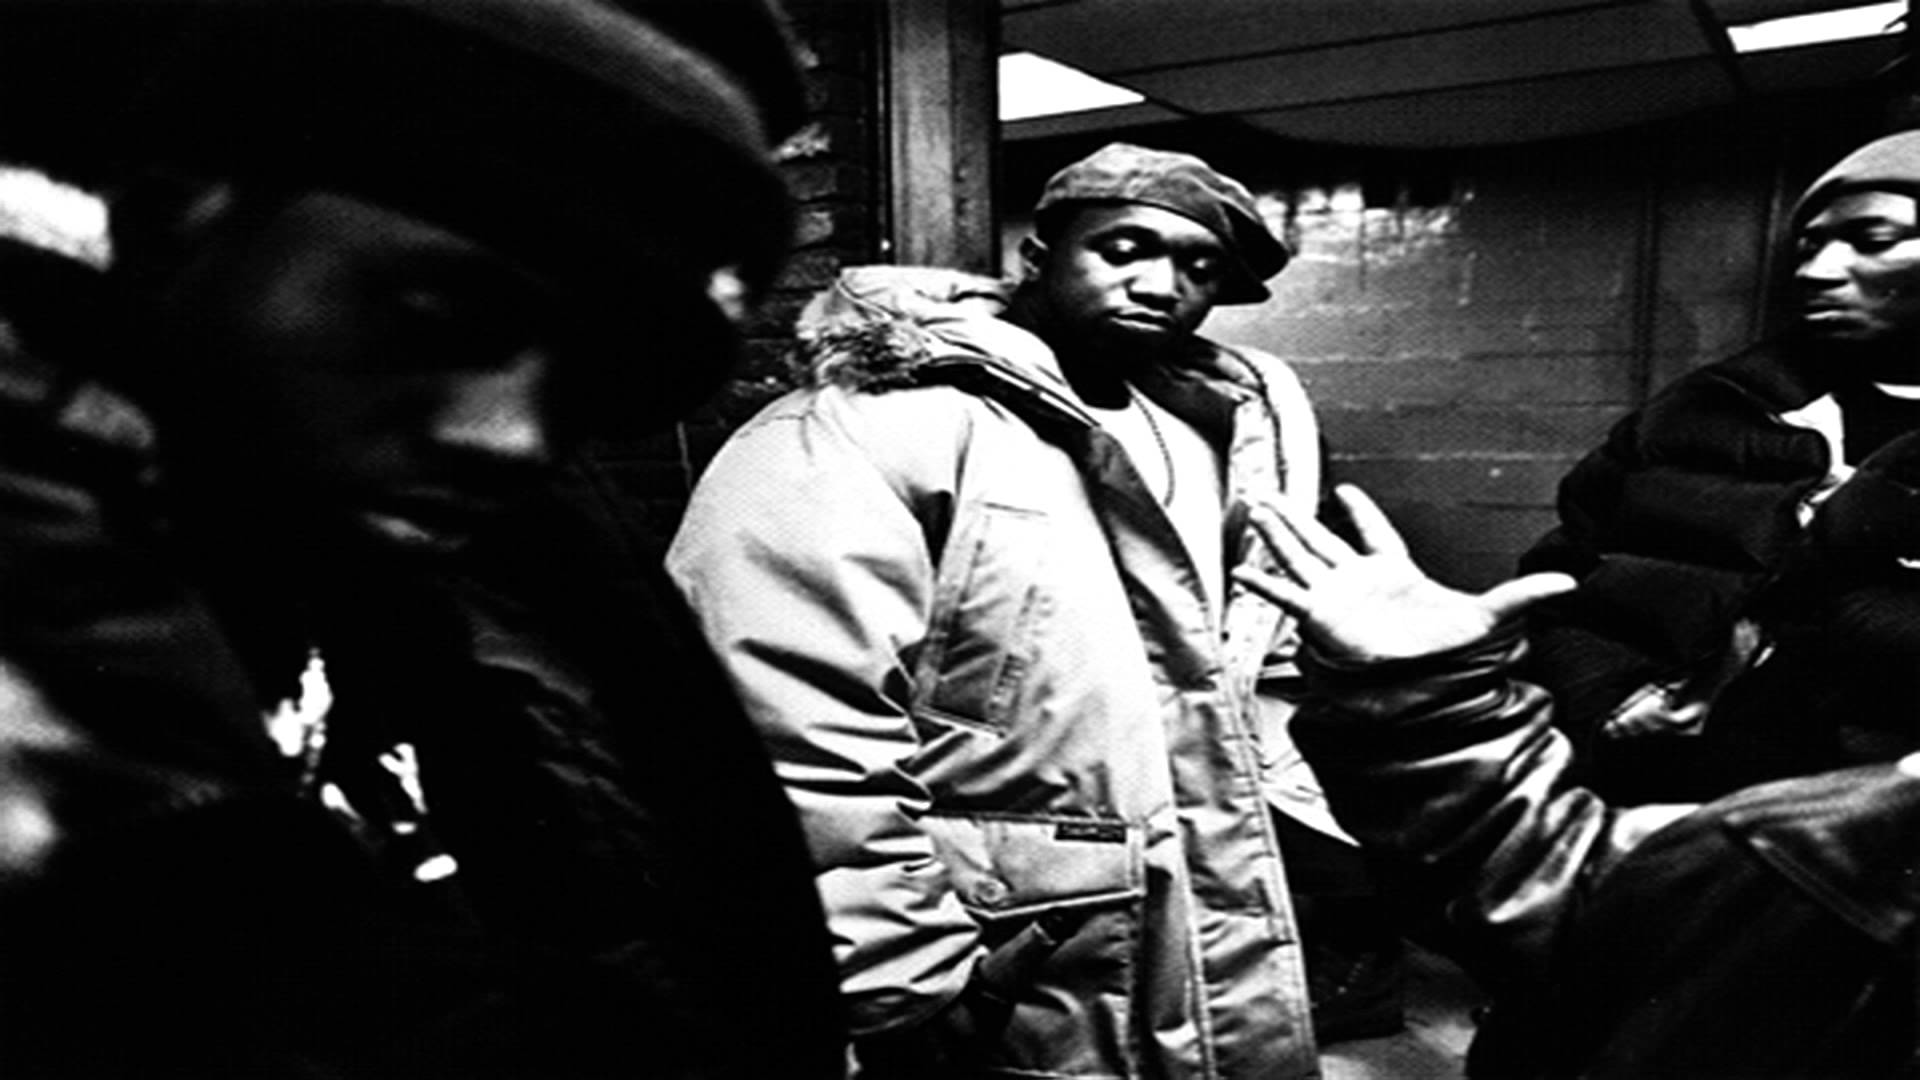 Old School Hip Hop Wallpaper Images Pictures   Becuo 1920x1080